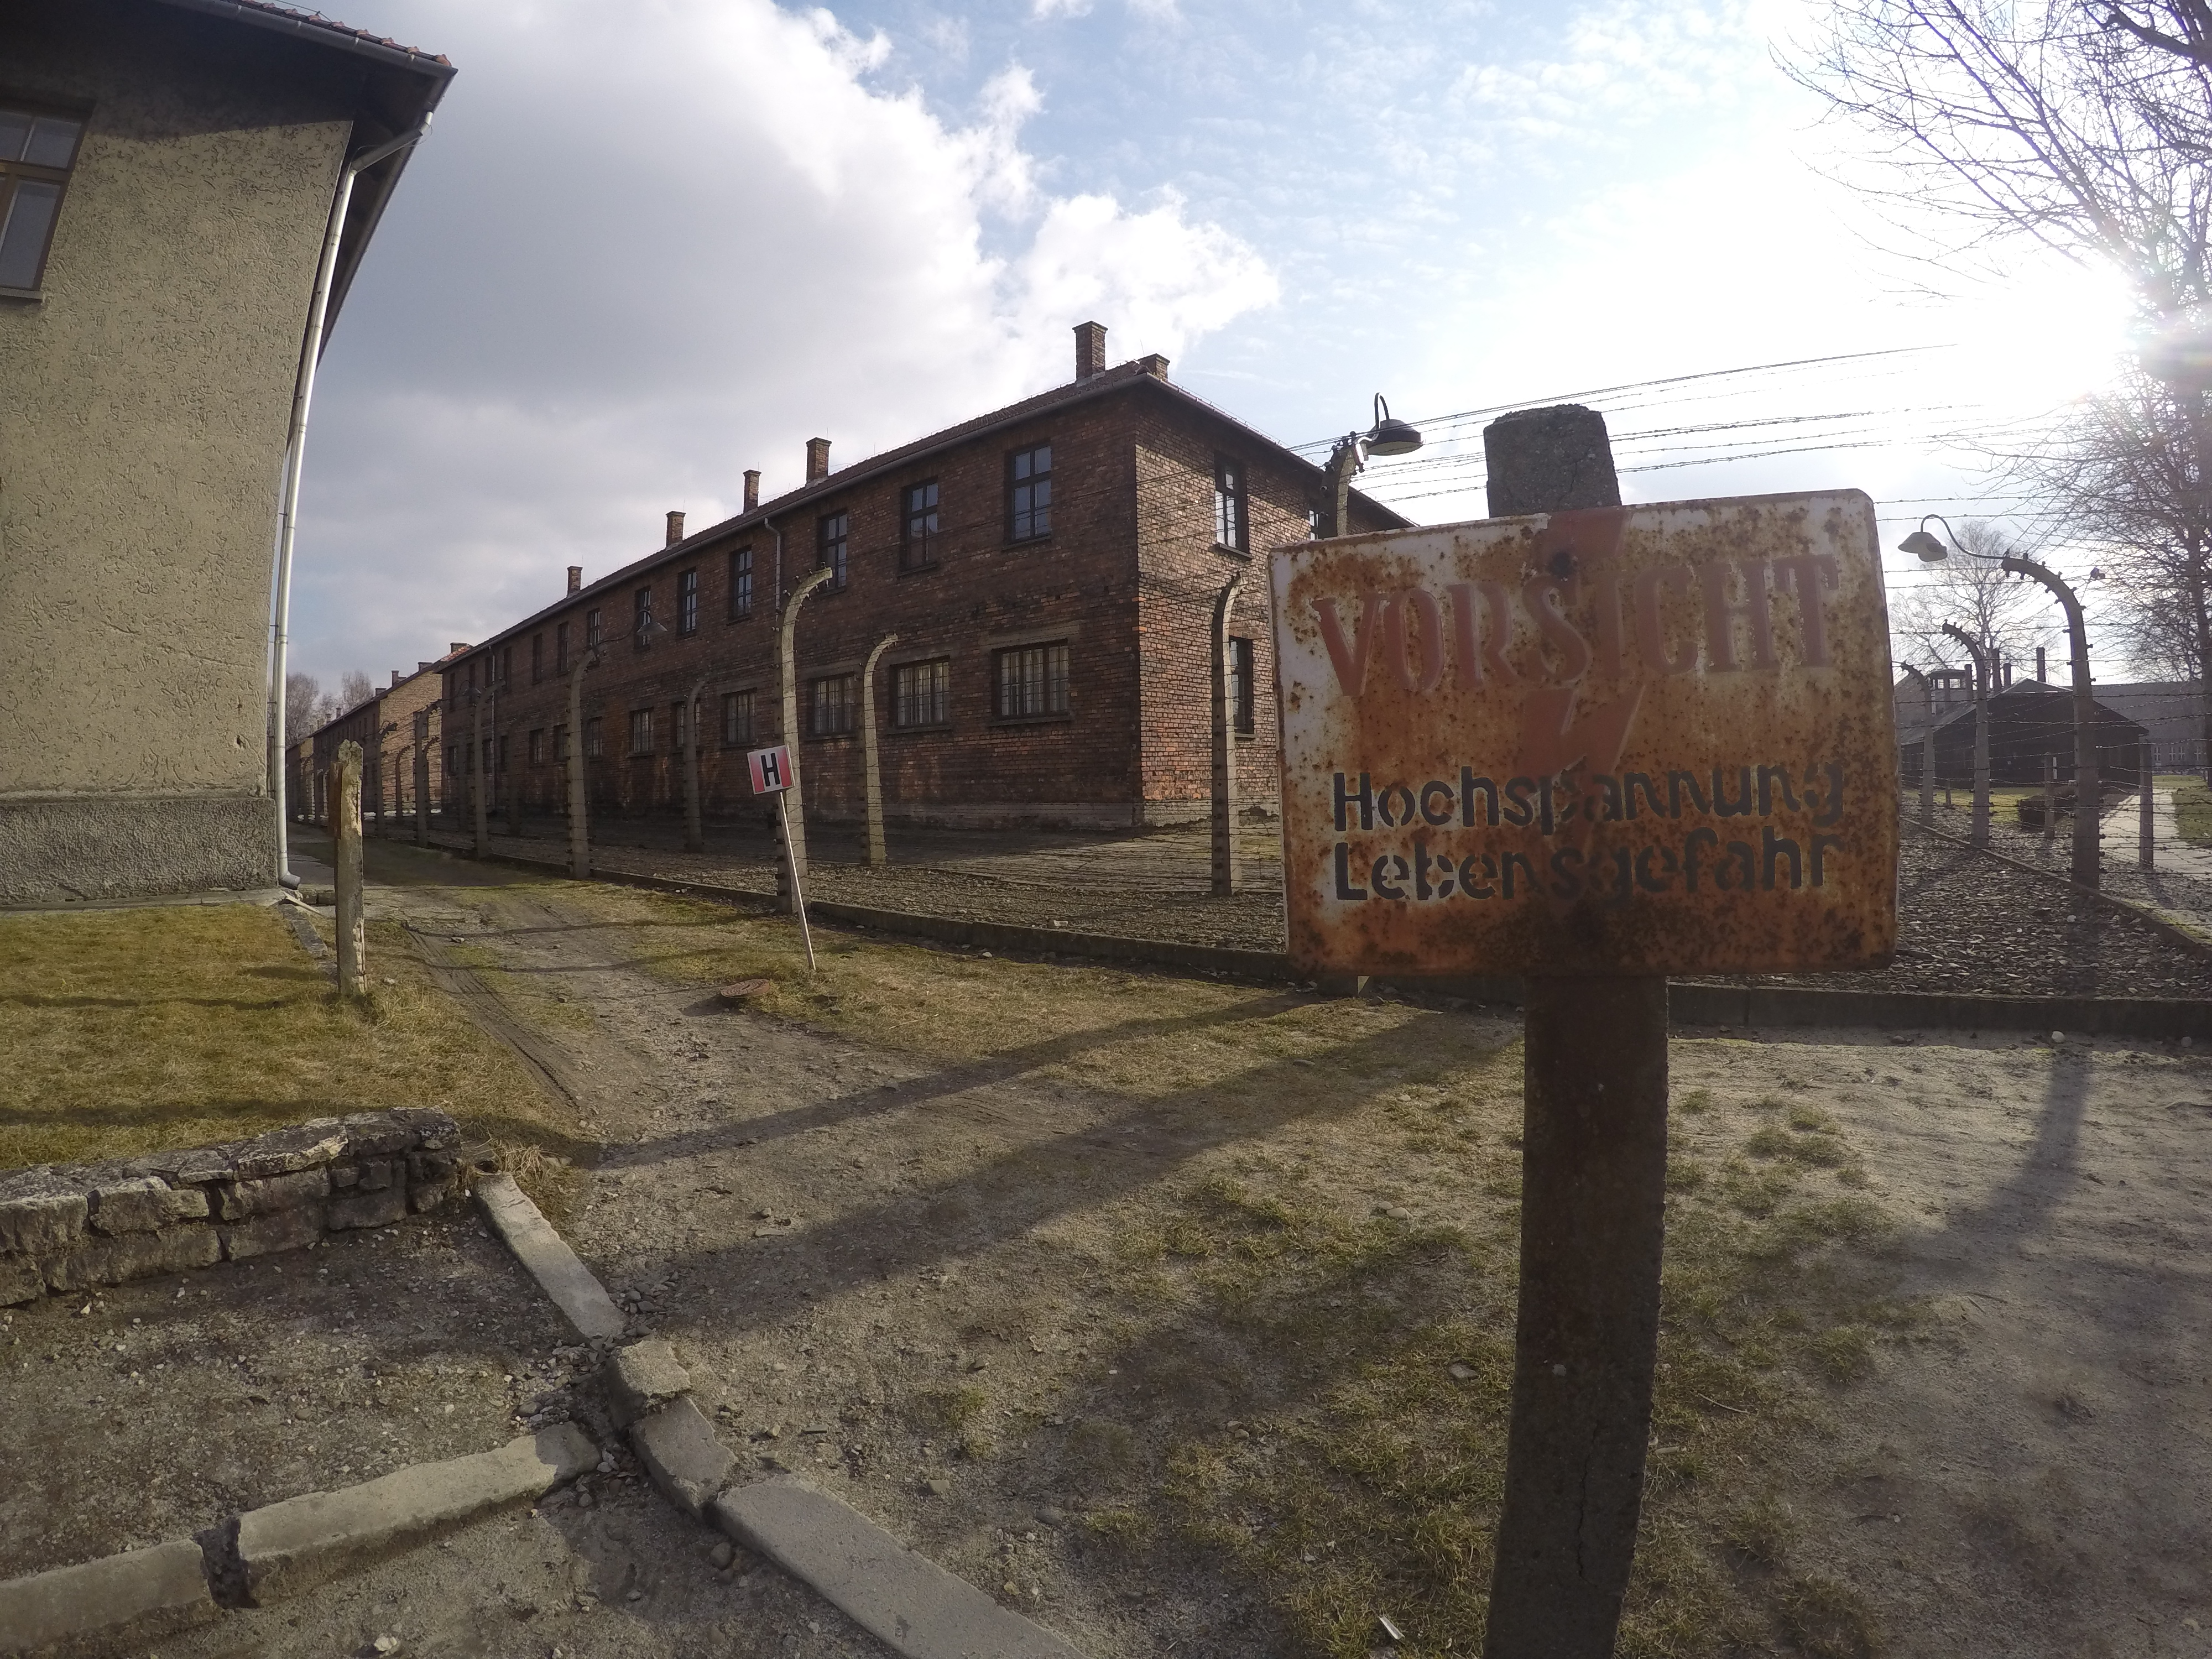 Auschwitz concentration camp from the outside